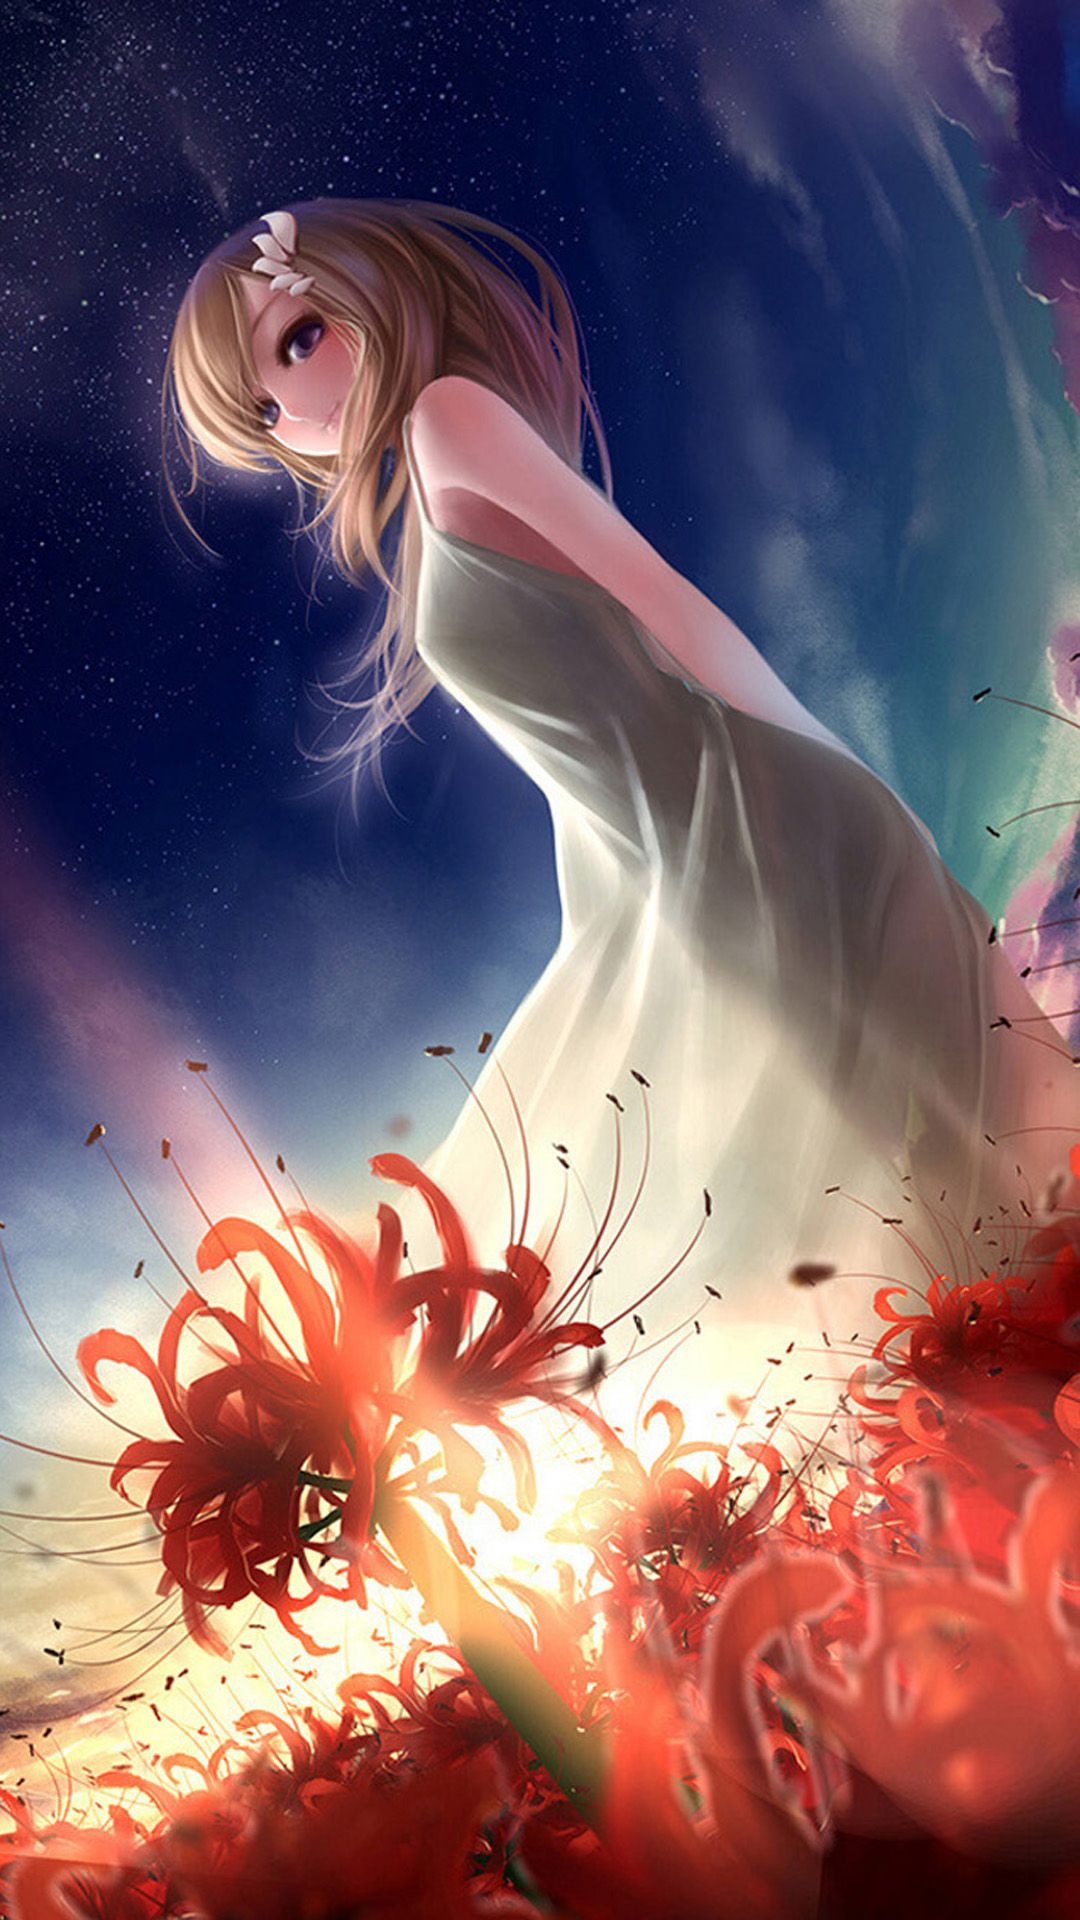 iPhone Anime HD 1080p Wallpapers - Wallpaper Cave